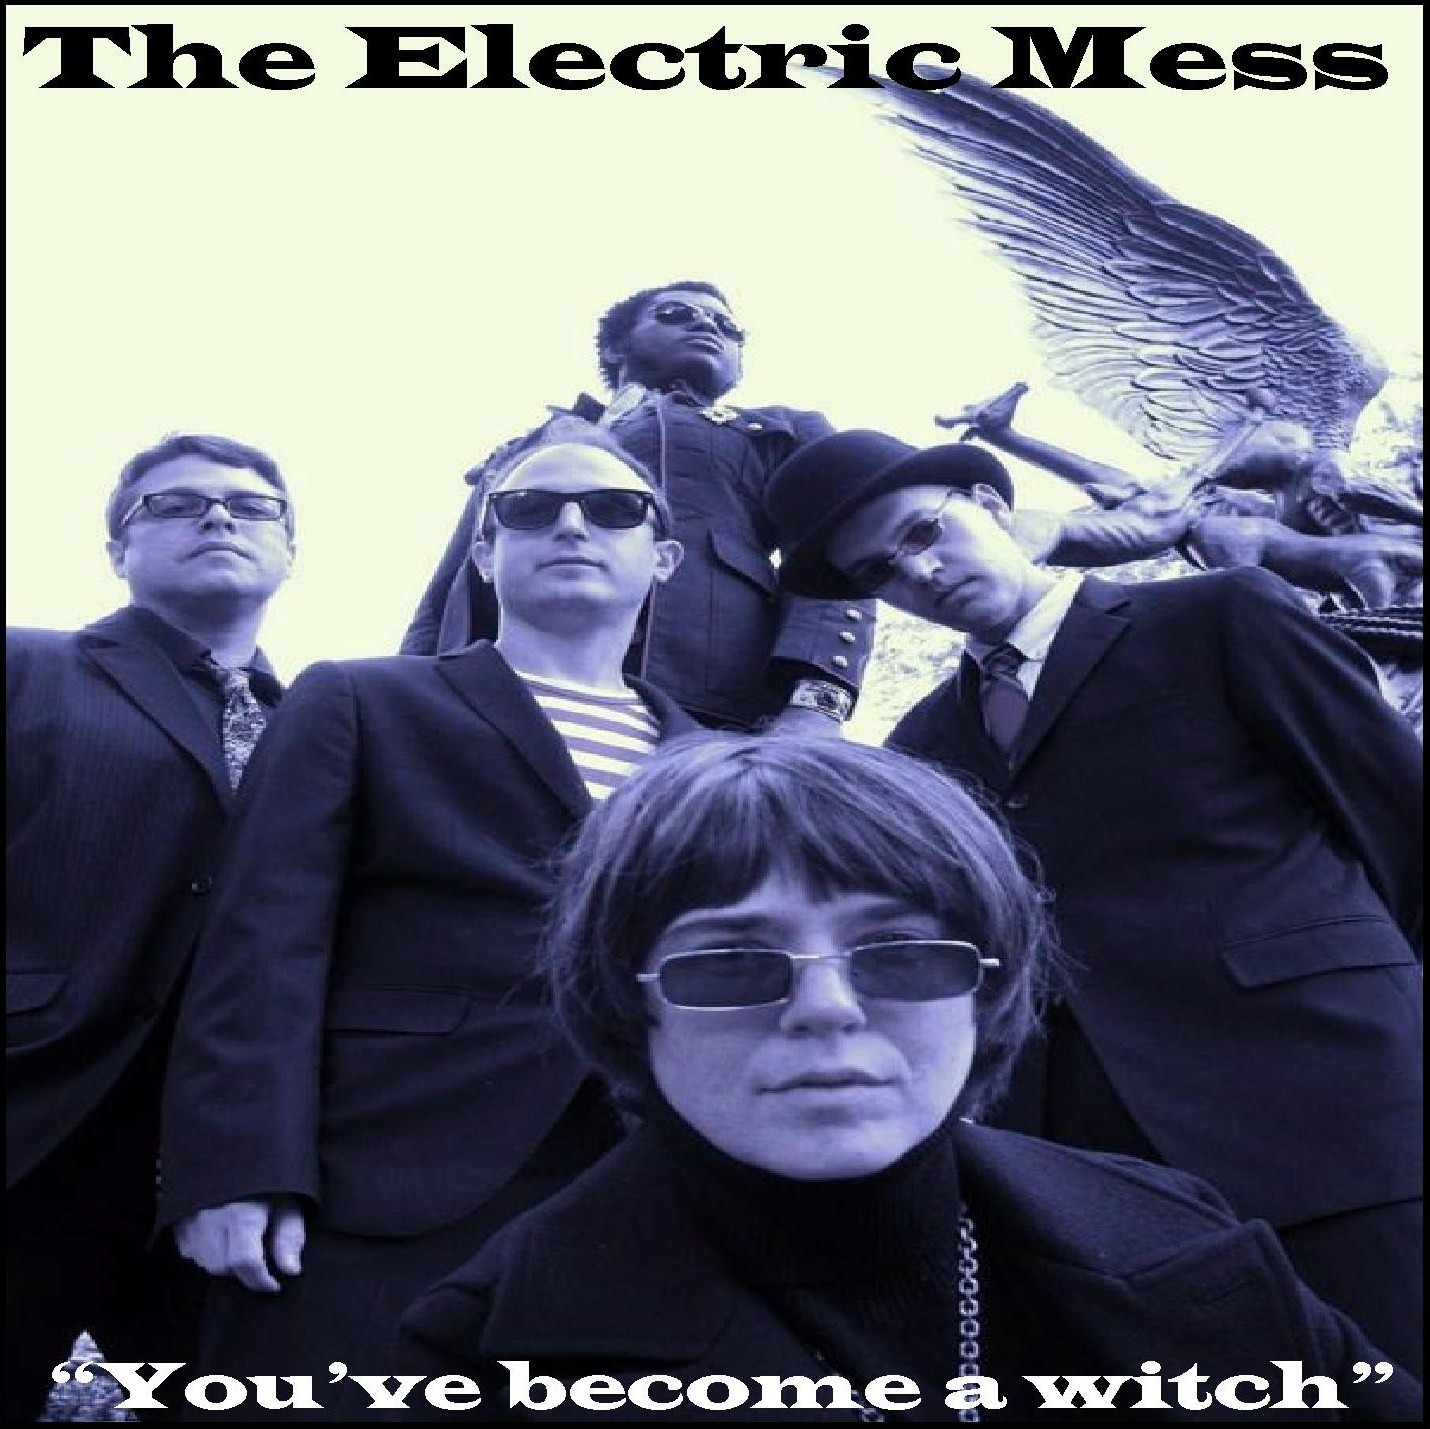 THE ELECTRIC MESS You've Become A Witch 7